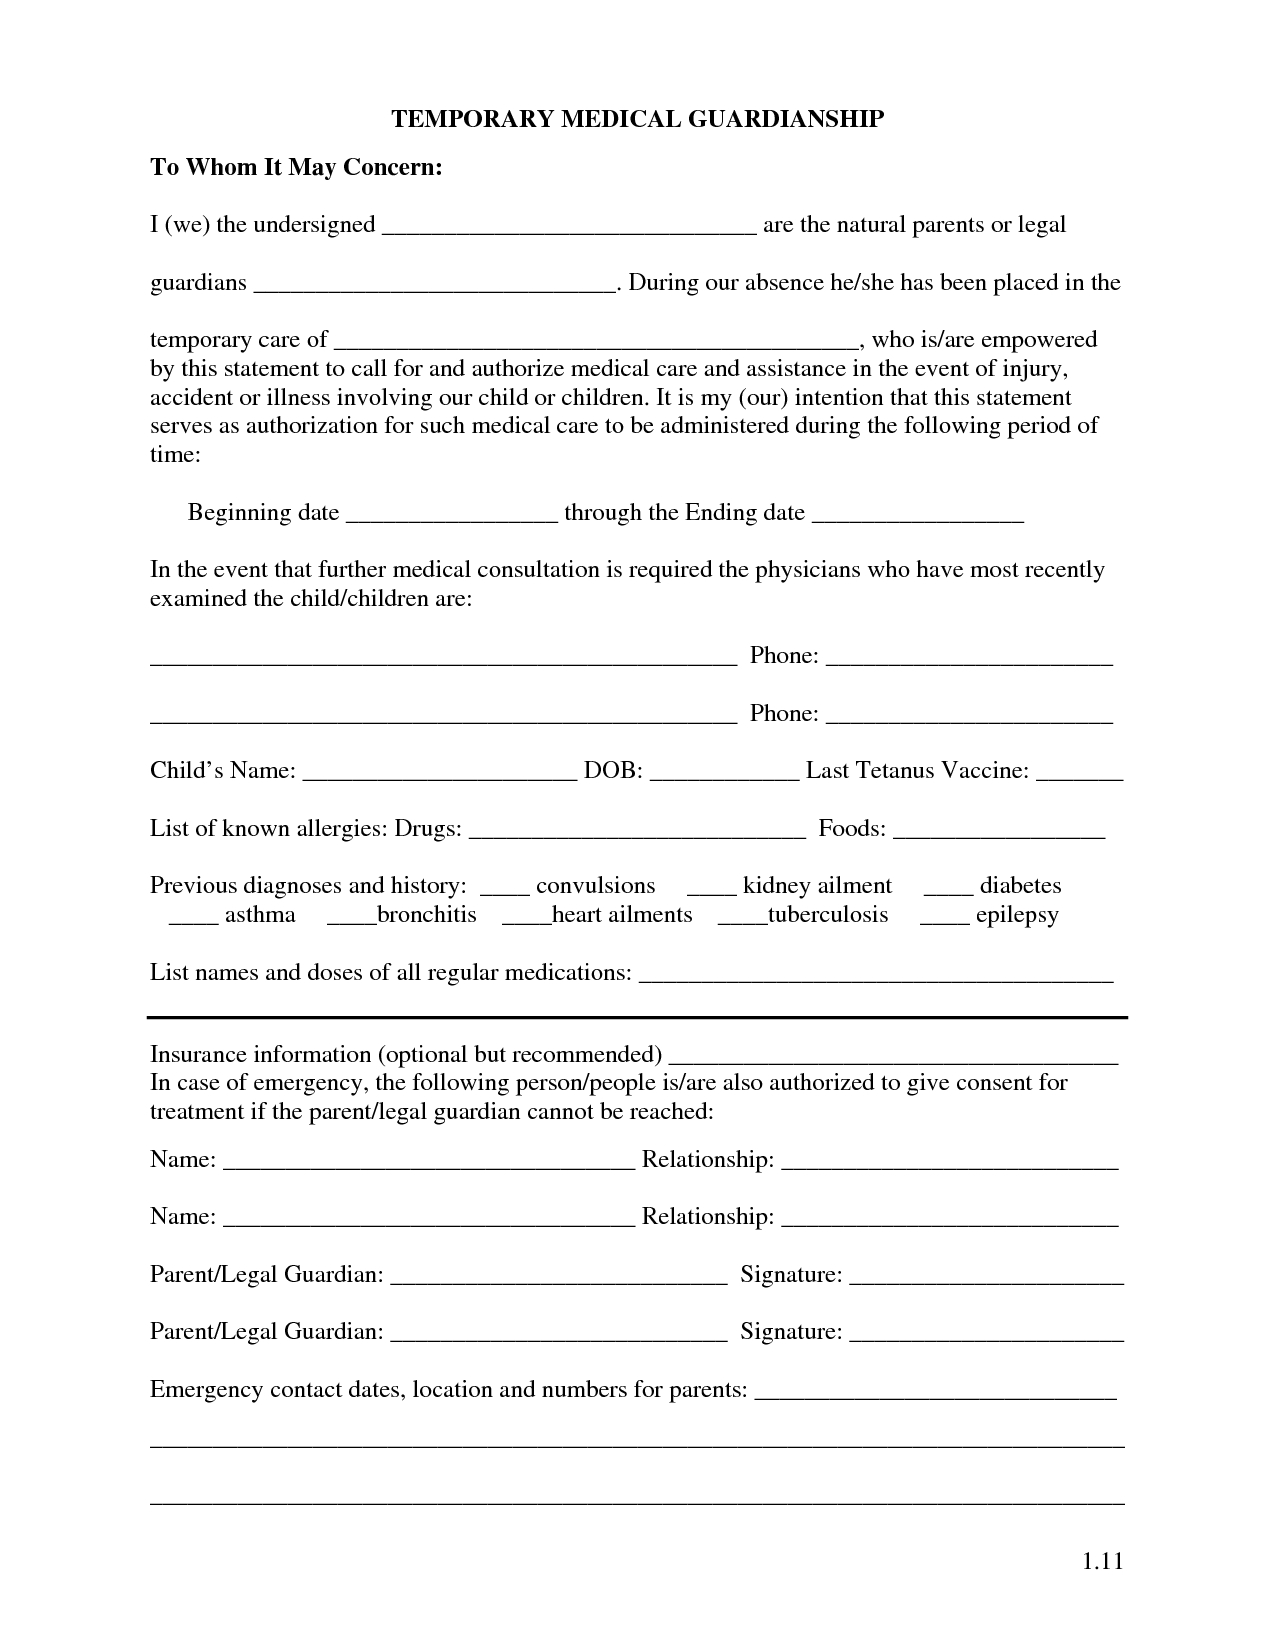 Free Printable Temporary Guardianship Forms | Forms - Free Printable Temporary Guardianship Form